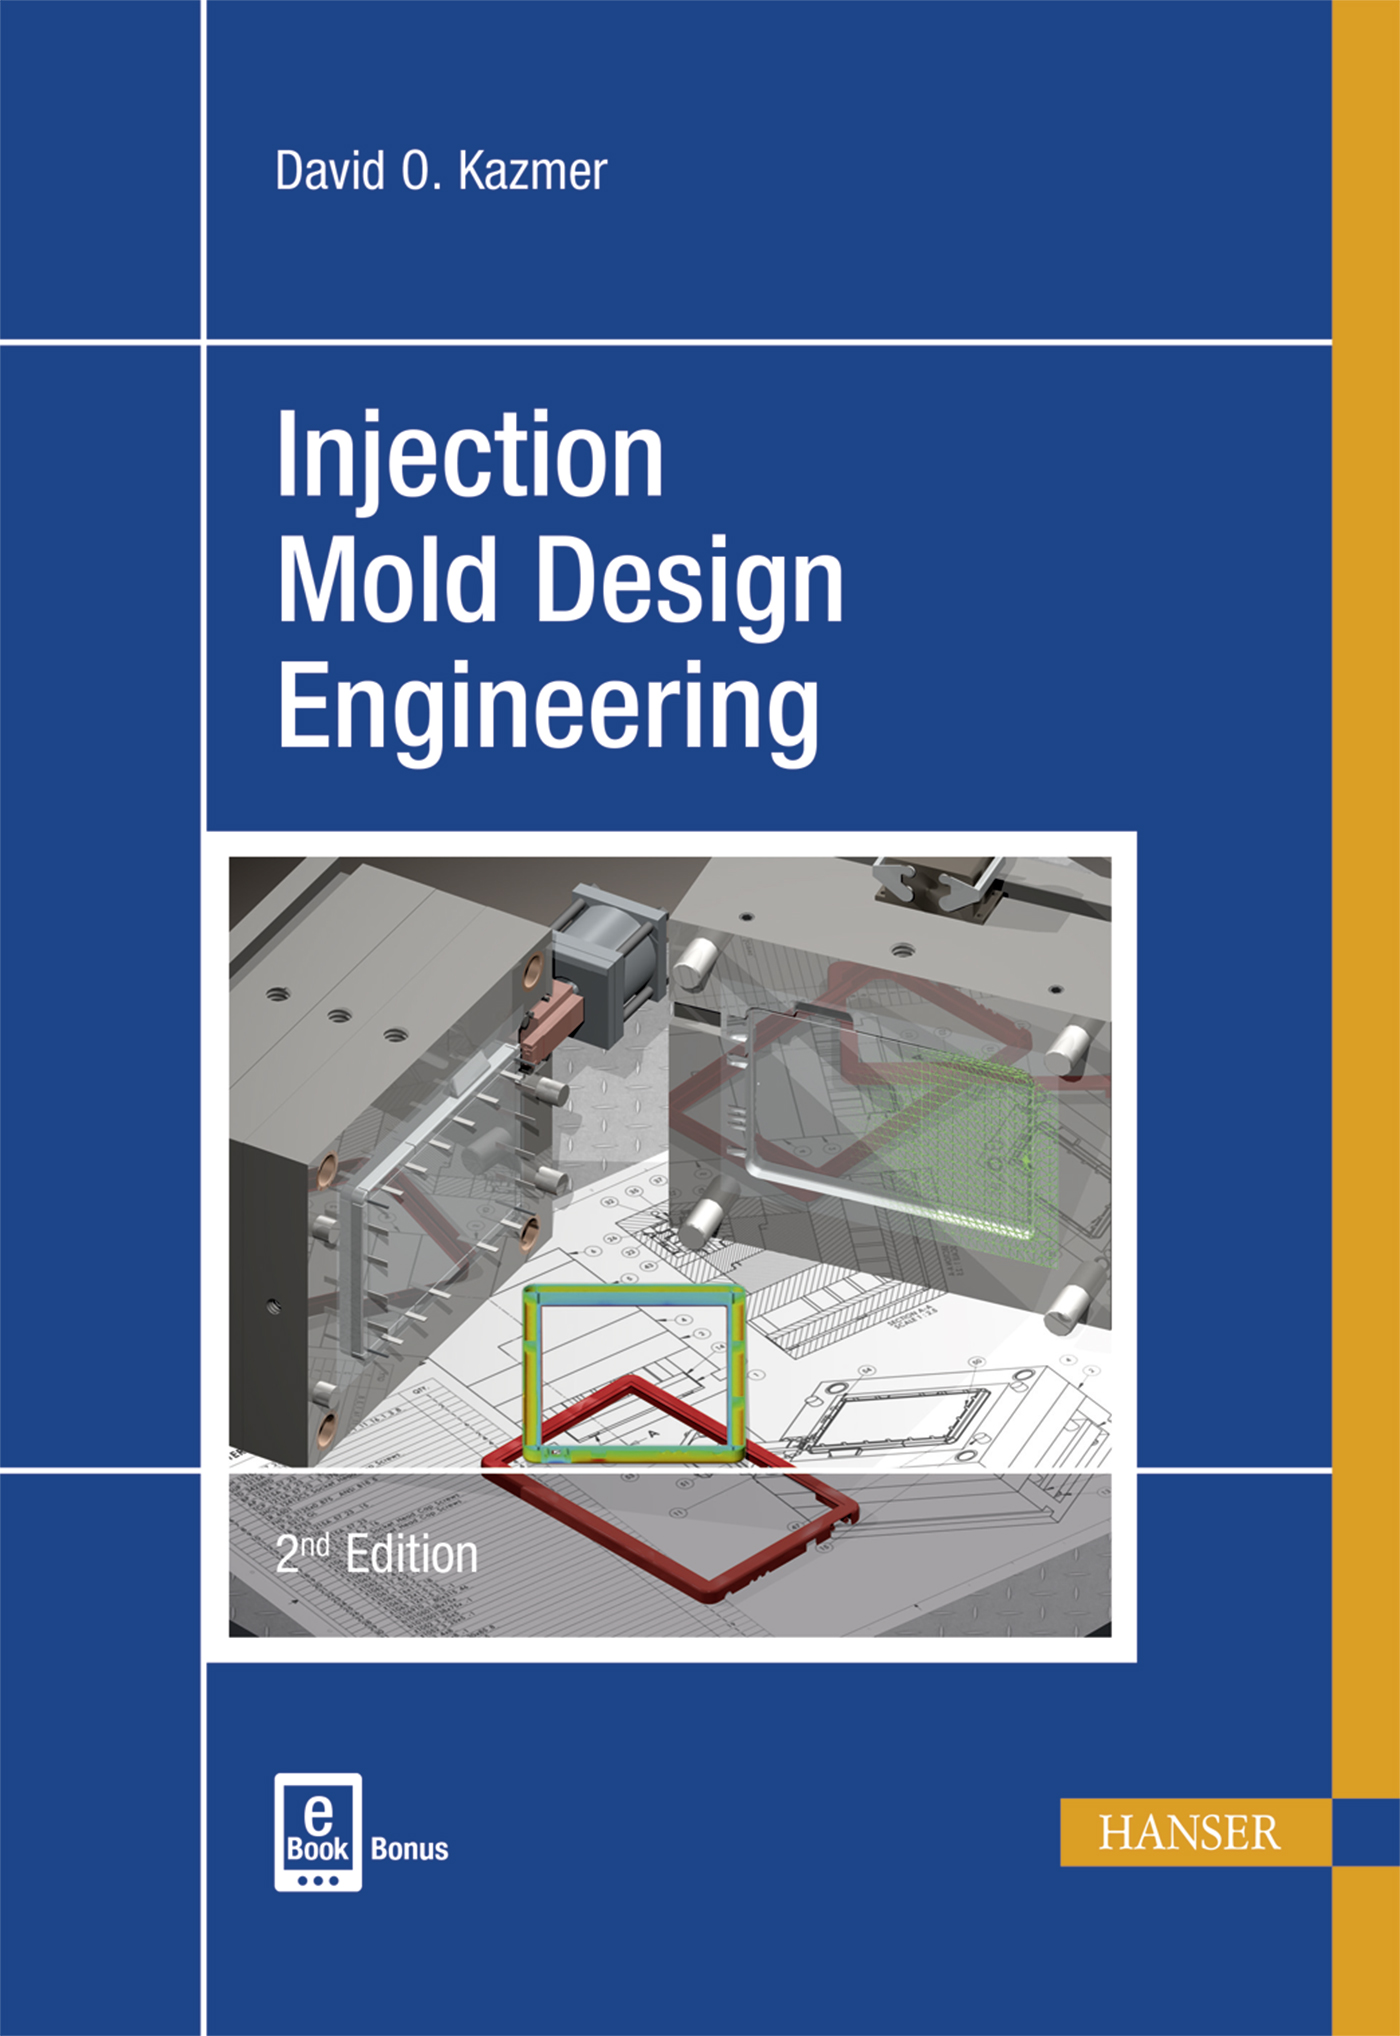 Kazmer, Injection Mold Design Engineering, 978-1-56990-570-8